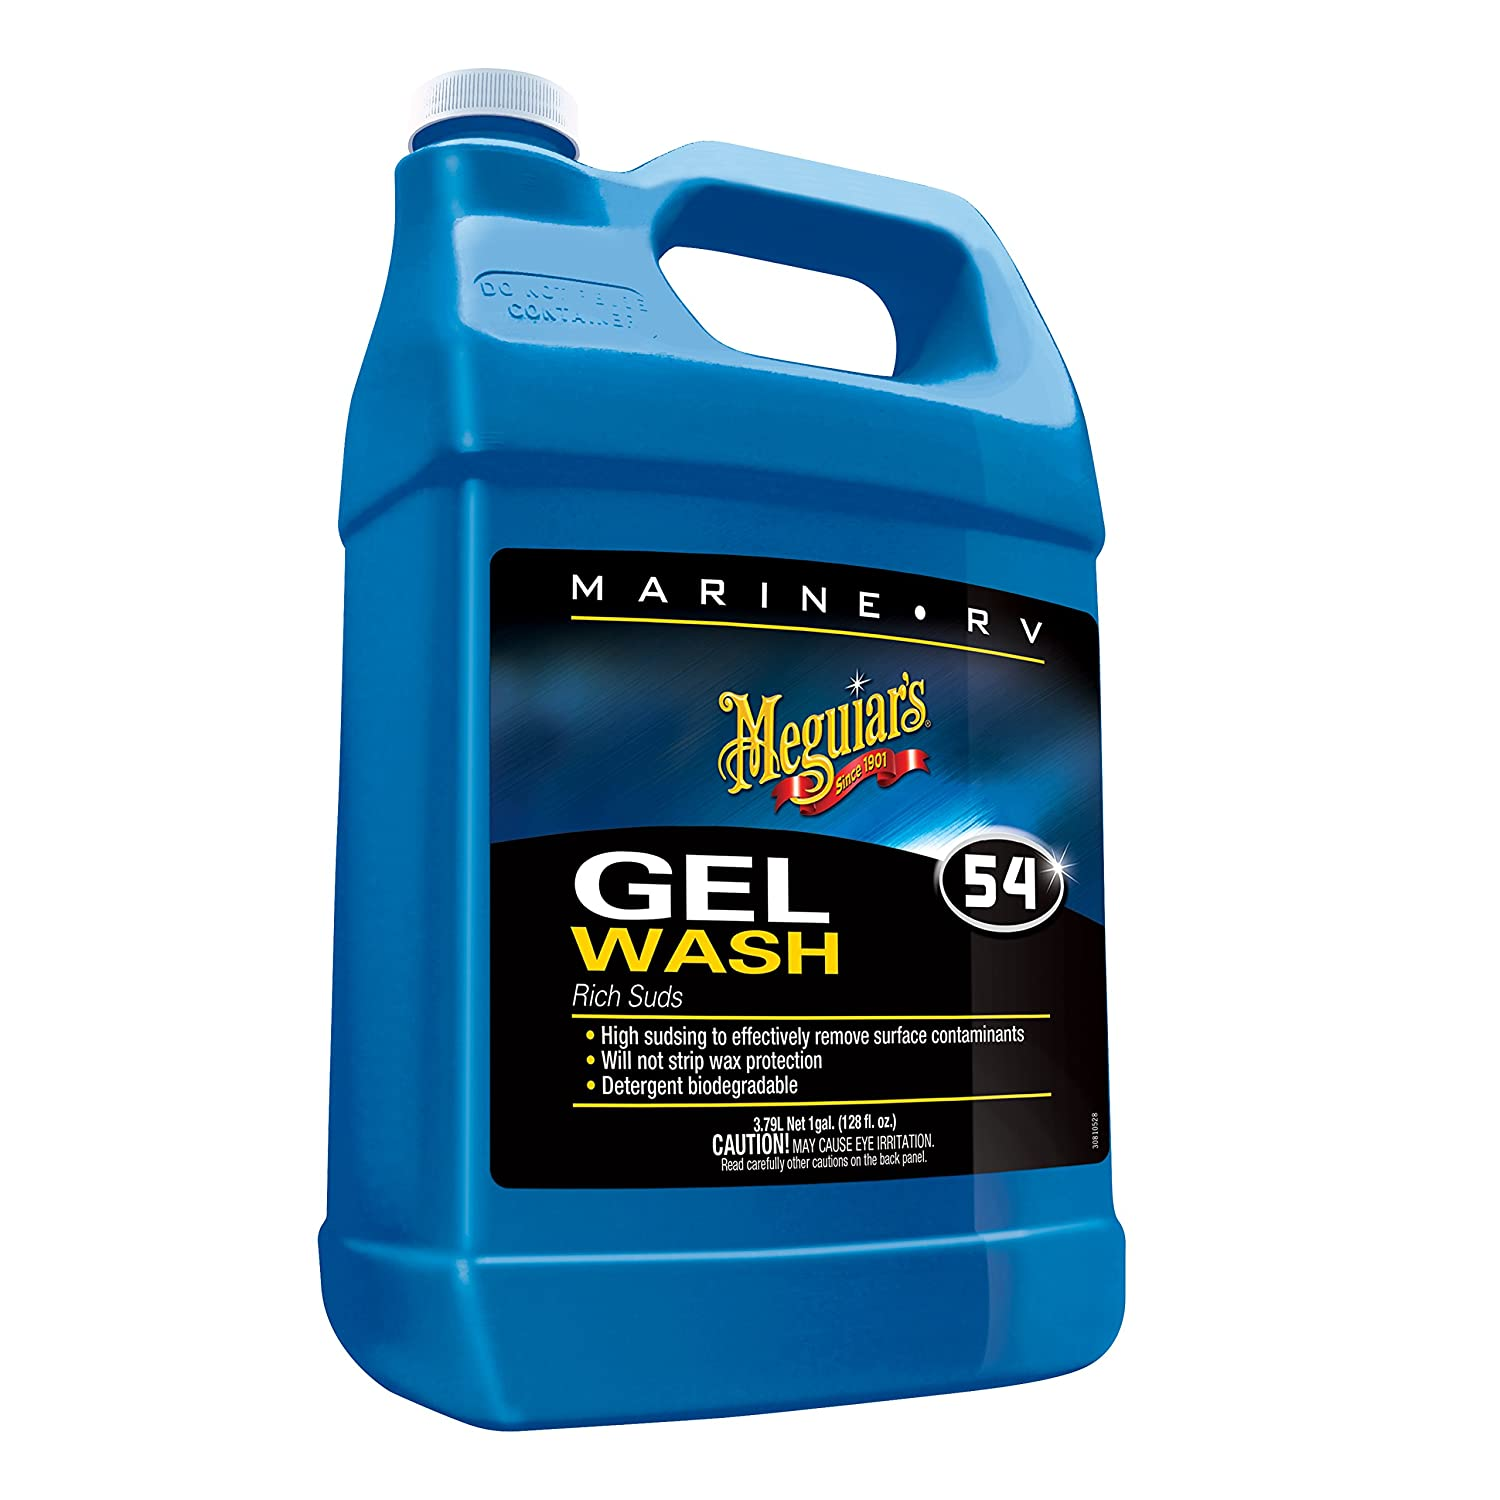 Meguiar's M5401 Marine/RV Gel Wash - 1 Gallon Meguiar' s Meguiar' s M5401 Marine/RV Gel Wash - 1 Gallon